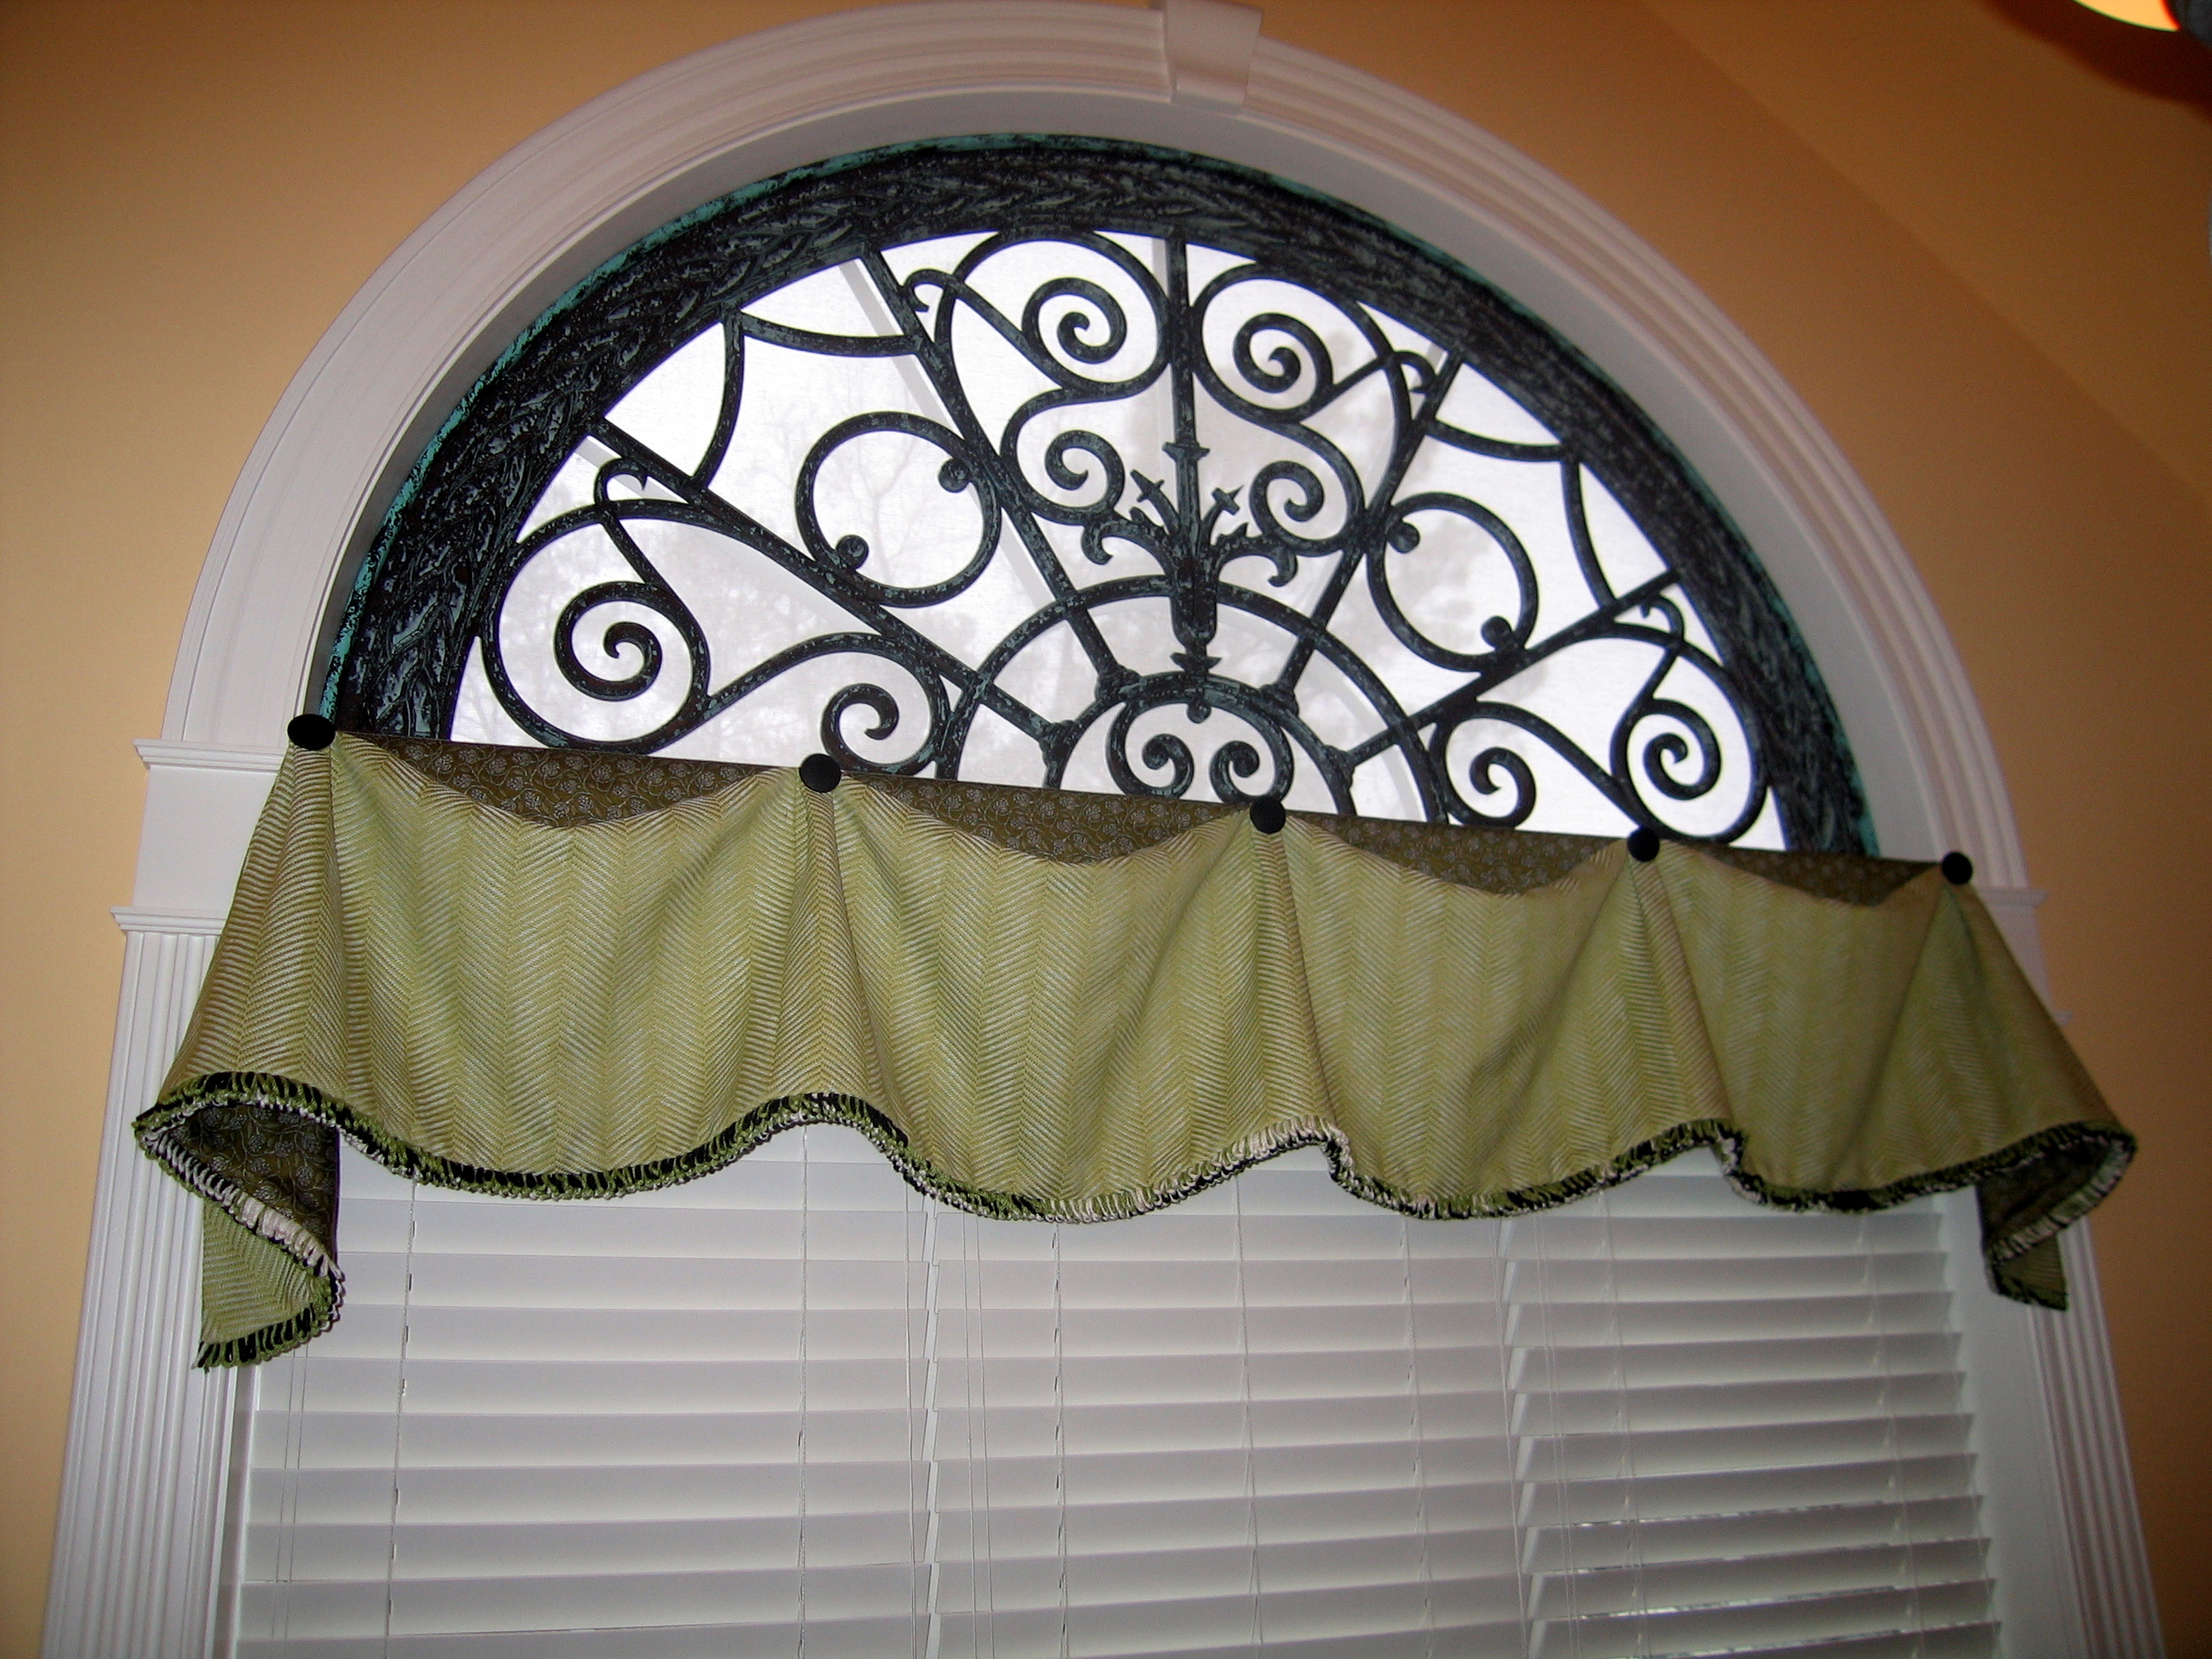 Tableaux Window With Valance Adds Polish